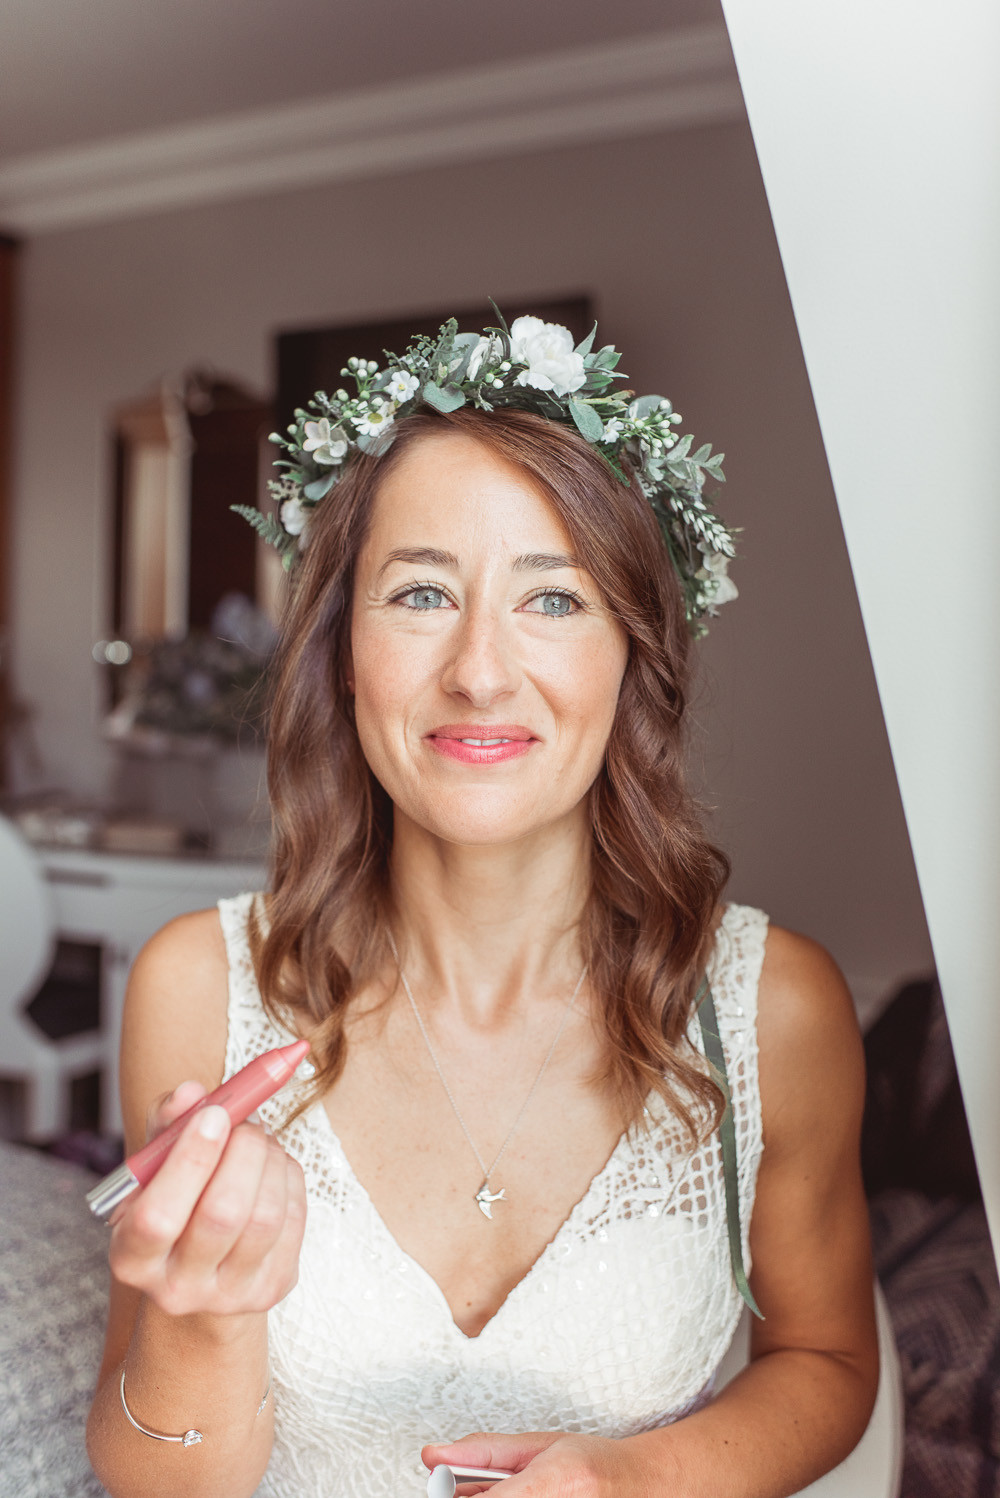 Christchurch Harbour Hotel - Make Me Bridal Artist: Timeless Beauty by Louise. #classic #flowercrown #naturalmakeup #weddingmorning #bridalmakeup